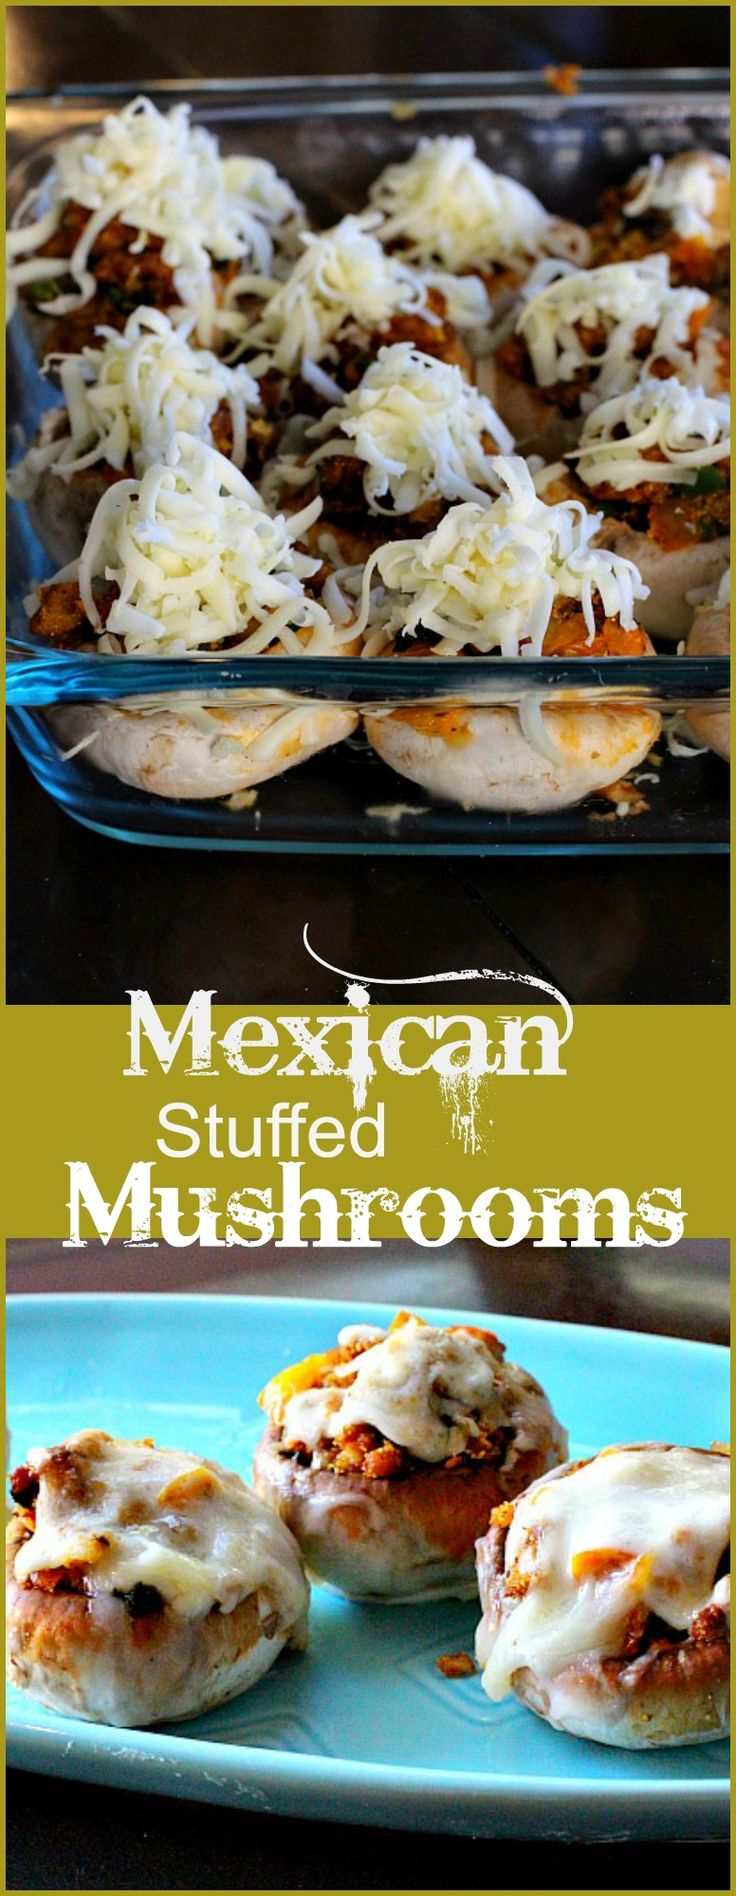 Little earthy button mushrooms come alive with Western flavors. Try these cheesy, chorizo, jalapeno pepper-stuffed mushrooms for your next appetizer. Mexican Stuffed Mushrooms make a great appetizer recipe.